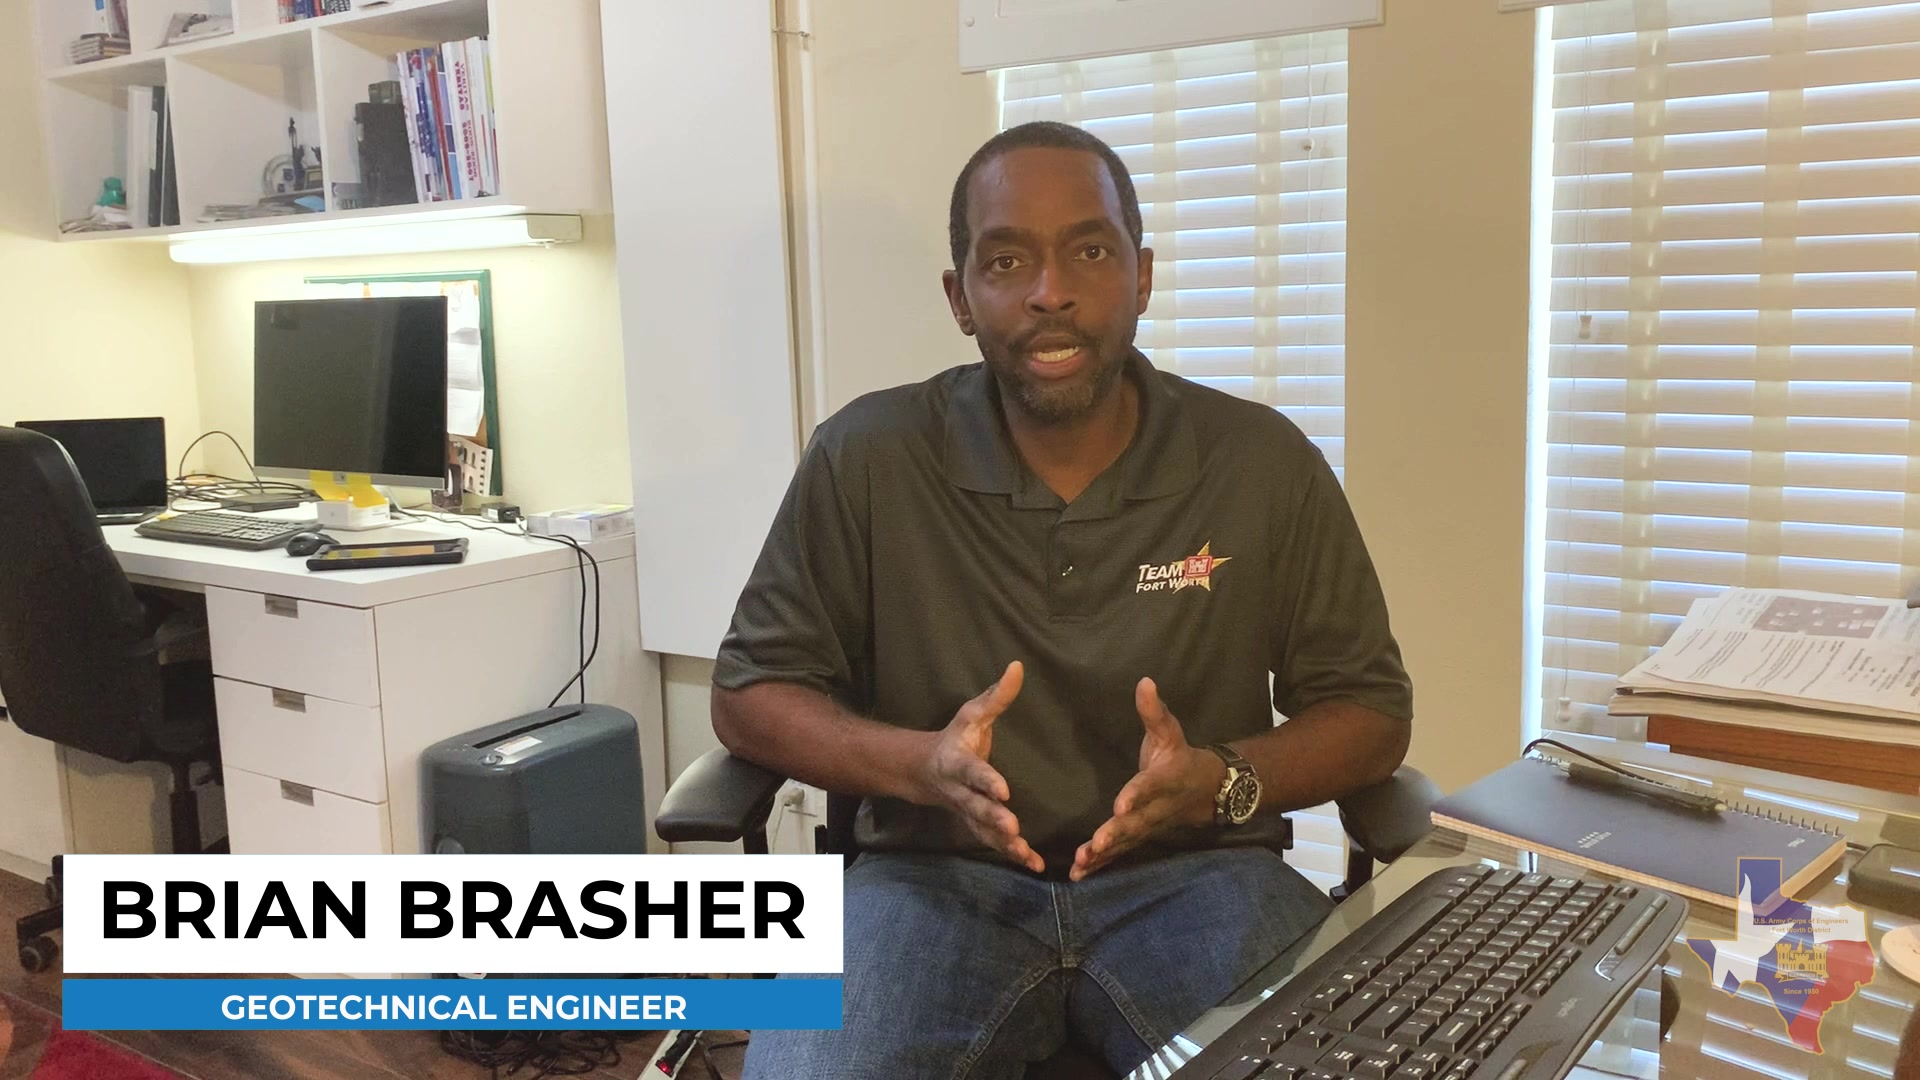 Brian Brasher, Geotechnical Engineer, was inspired to become an engineer while working in his father's electronics workshop building computers. His fascination with science and technology made joining USACE Fort Worth his obvious choice.